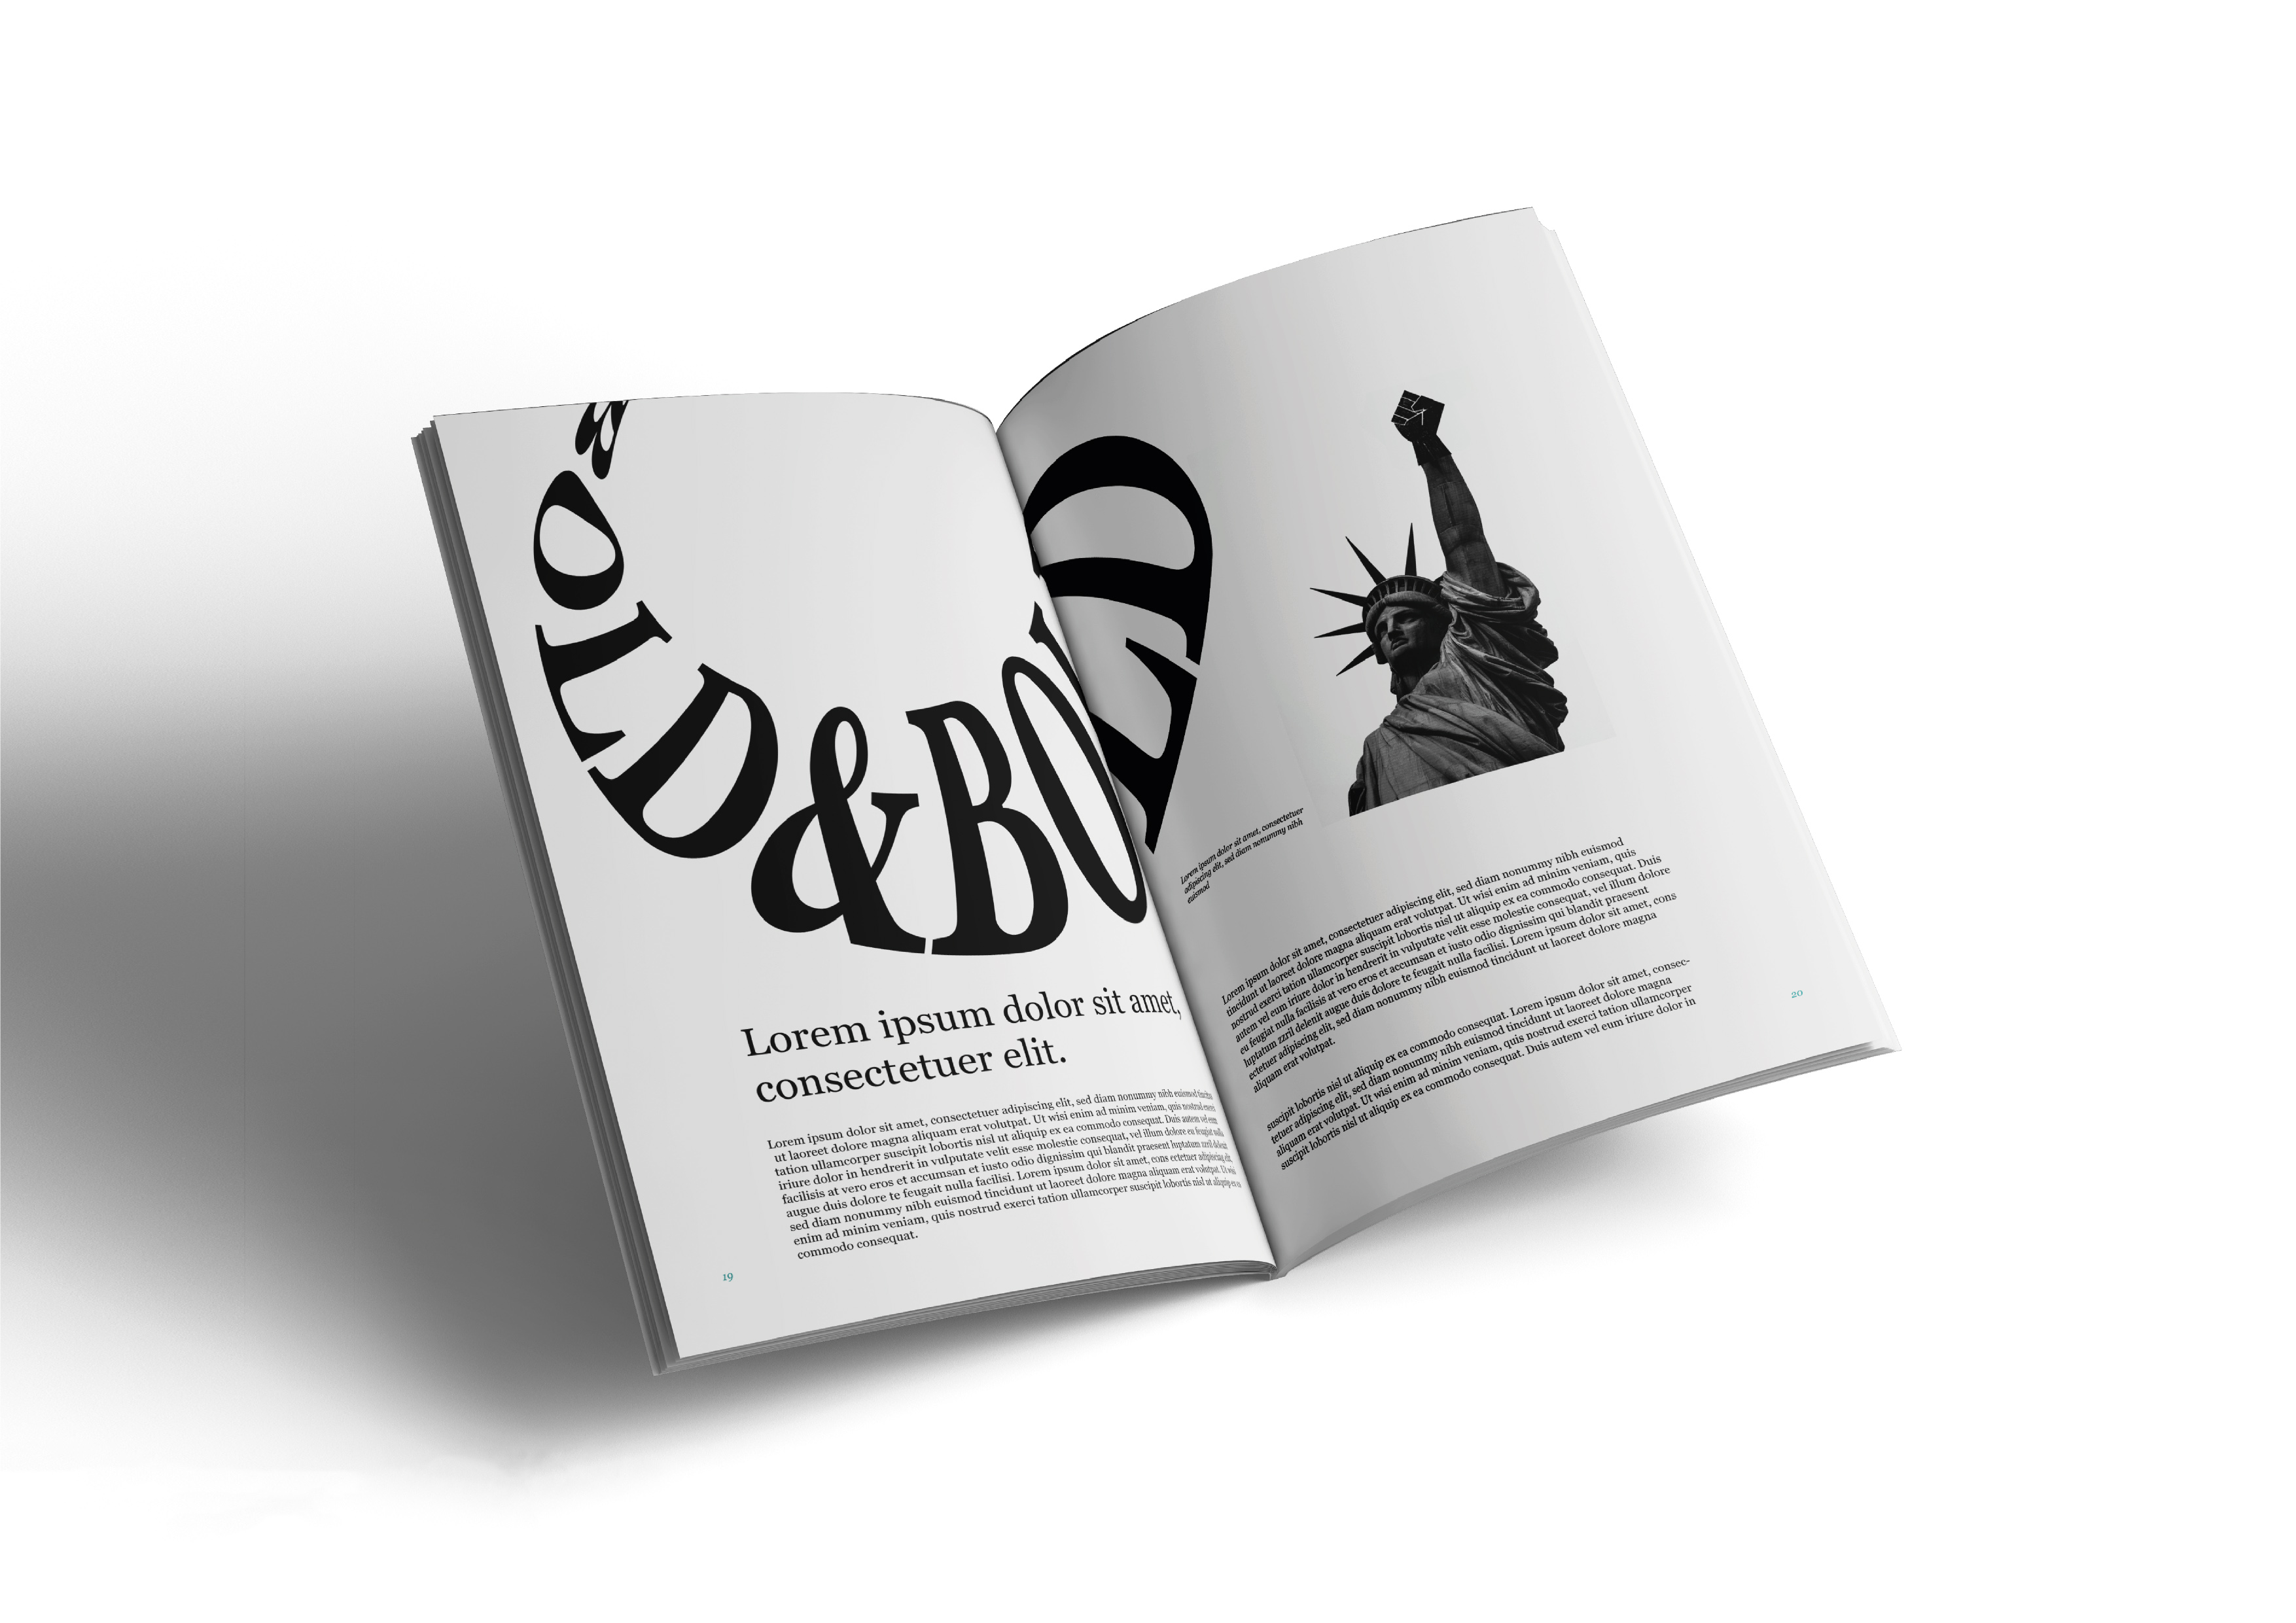 A magazine spread mock-up by Miran Jurisevic for 'Bold